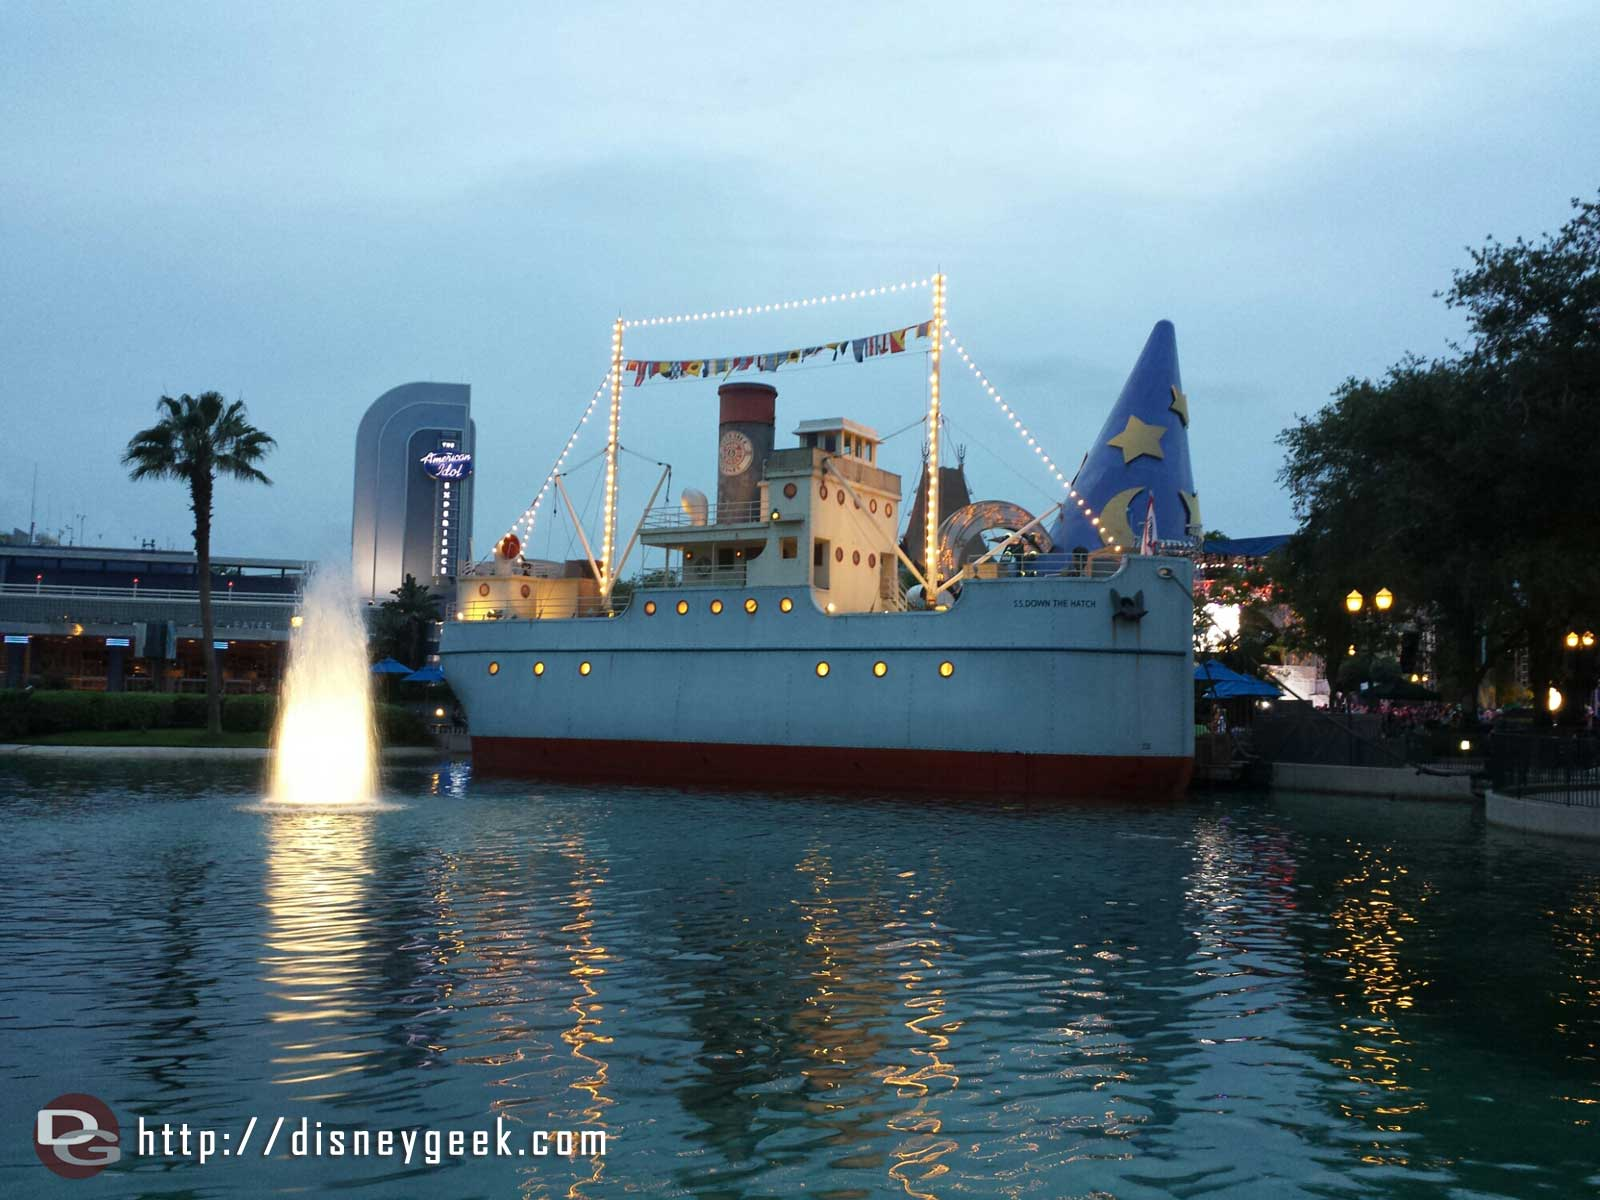 Min & Bills Diner and Echo Lake – Disney's Hollywood Studios